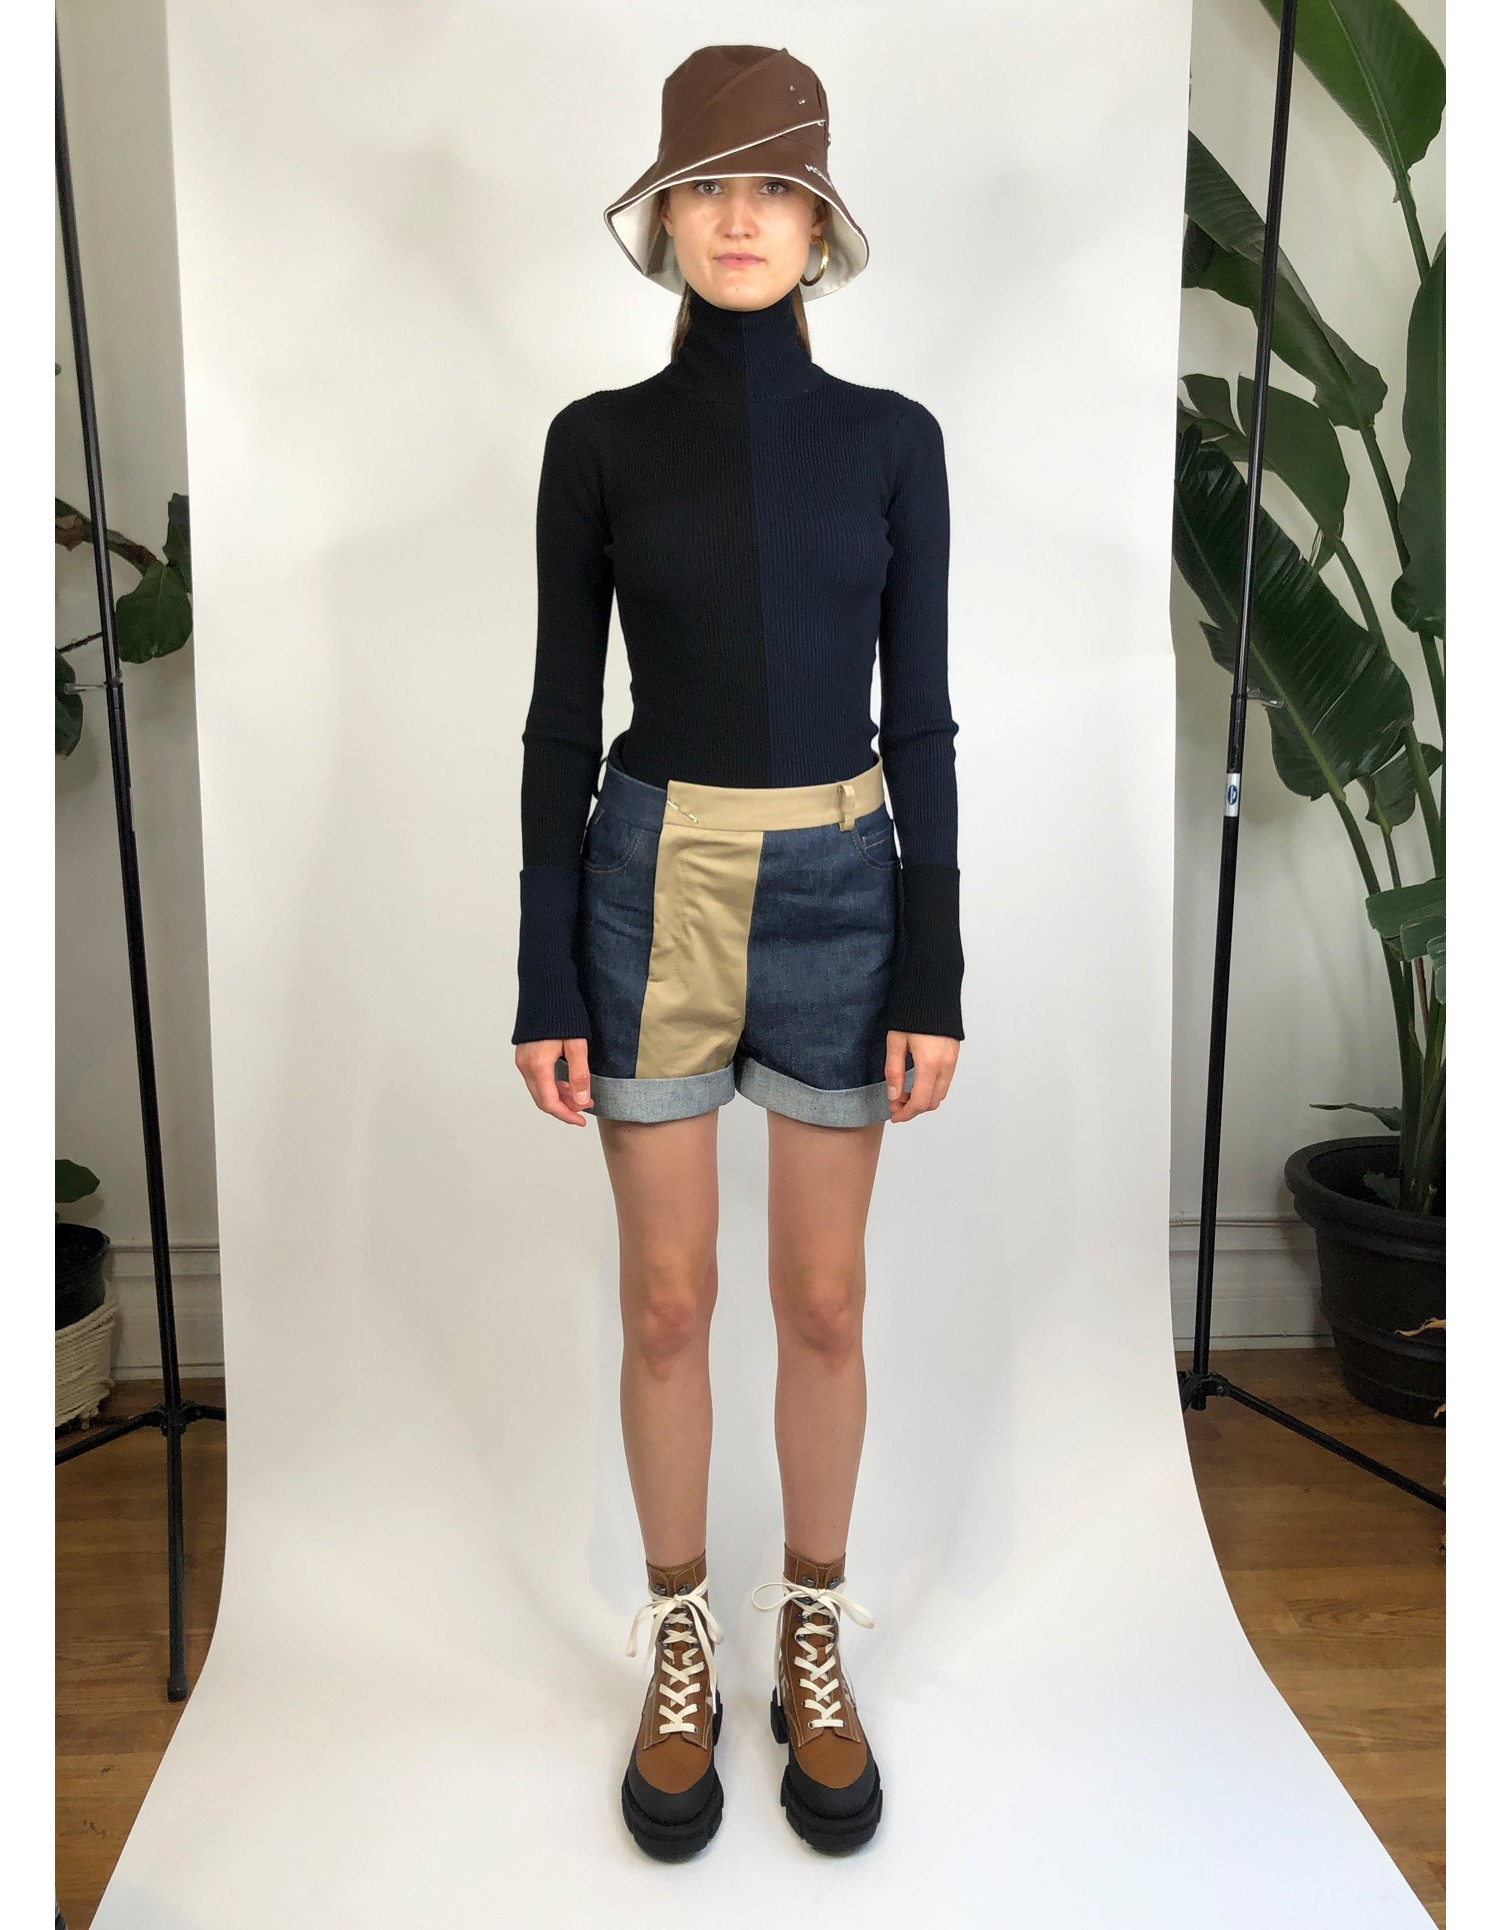 MONSE Patchwork Denim and Trouser Short on Model Front View